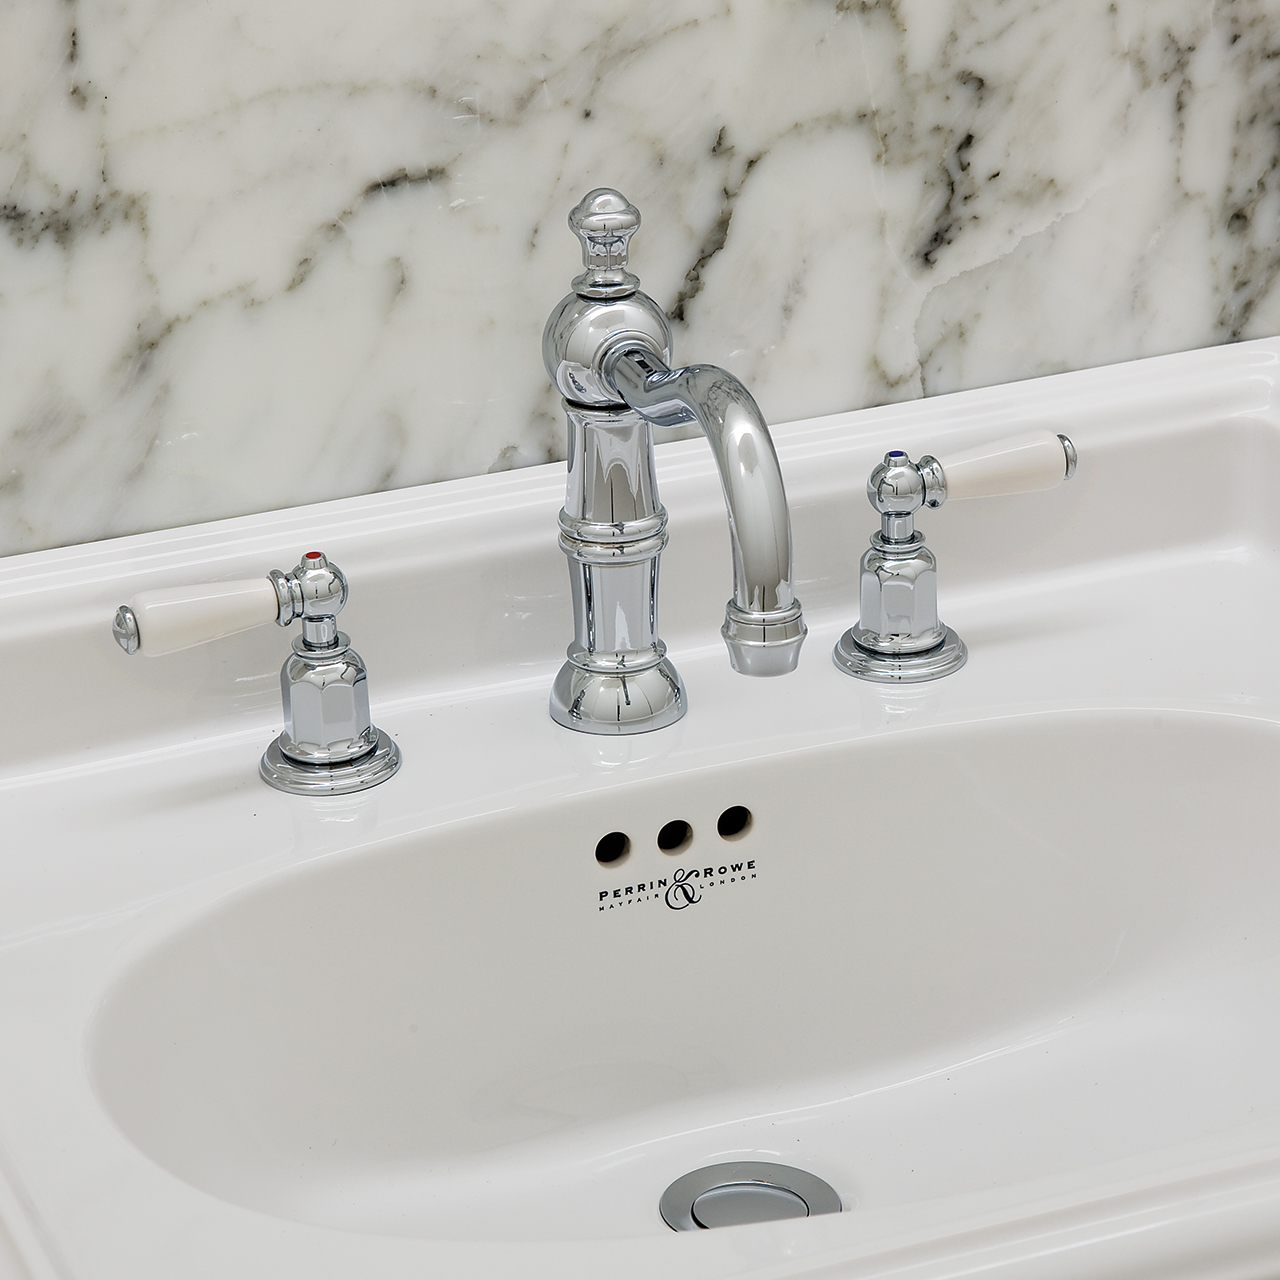 Perrin-and-Rowe Three hole basin set with country spout and lever handles-3720-.jpg